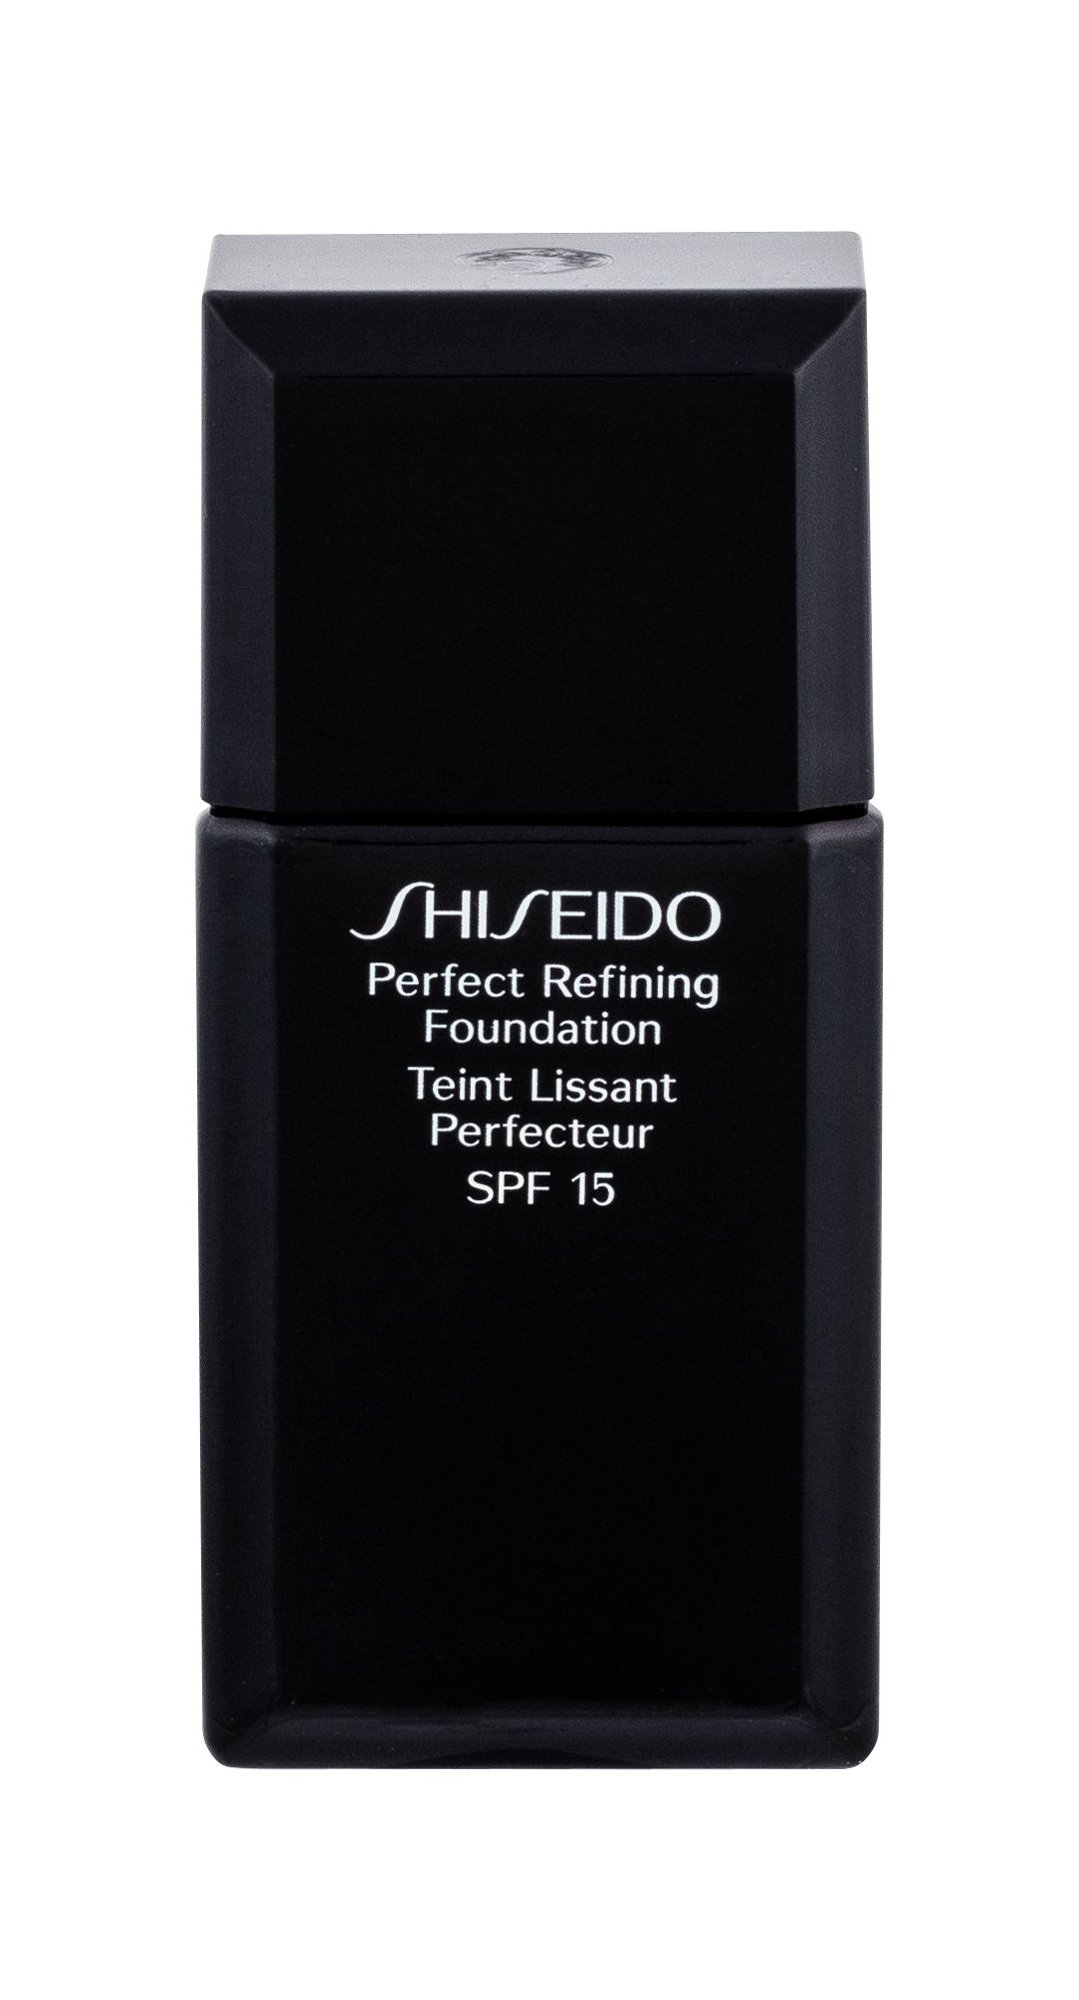 Shiseido Perfect Refining Foundation Cosmetic 30ml I40 Natural Fir Ivory